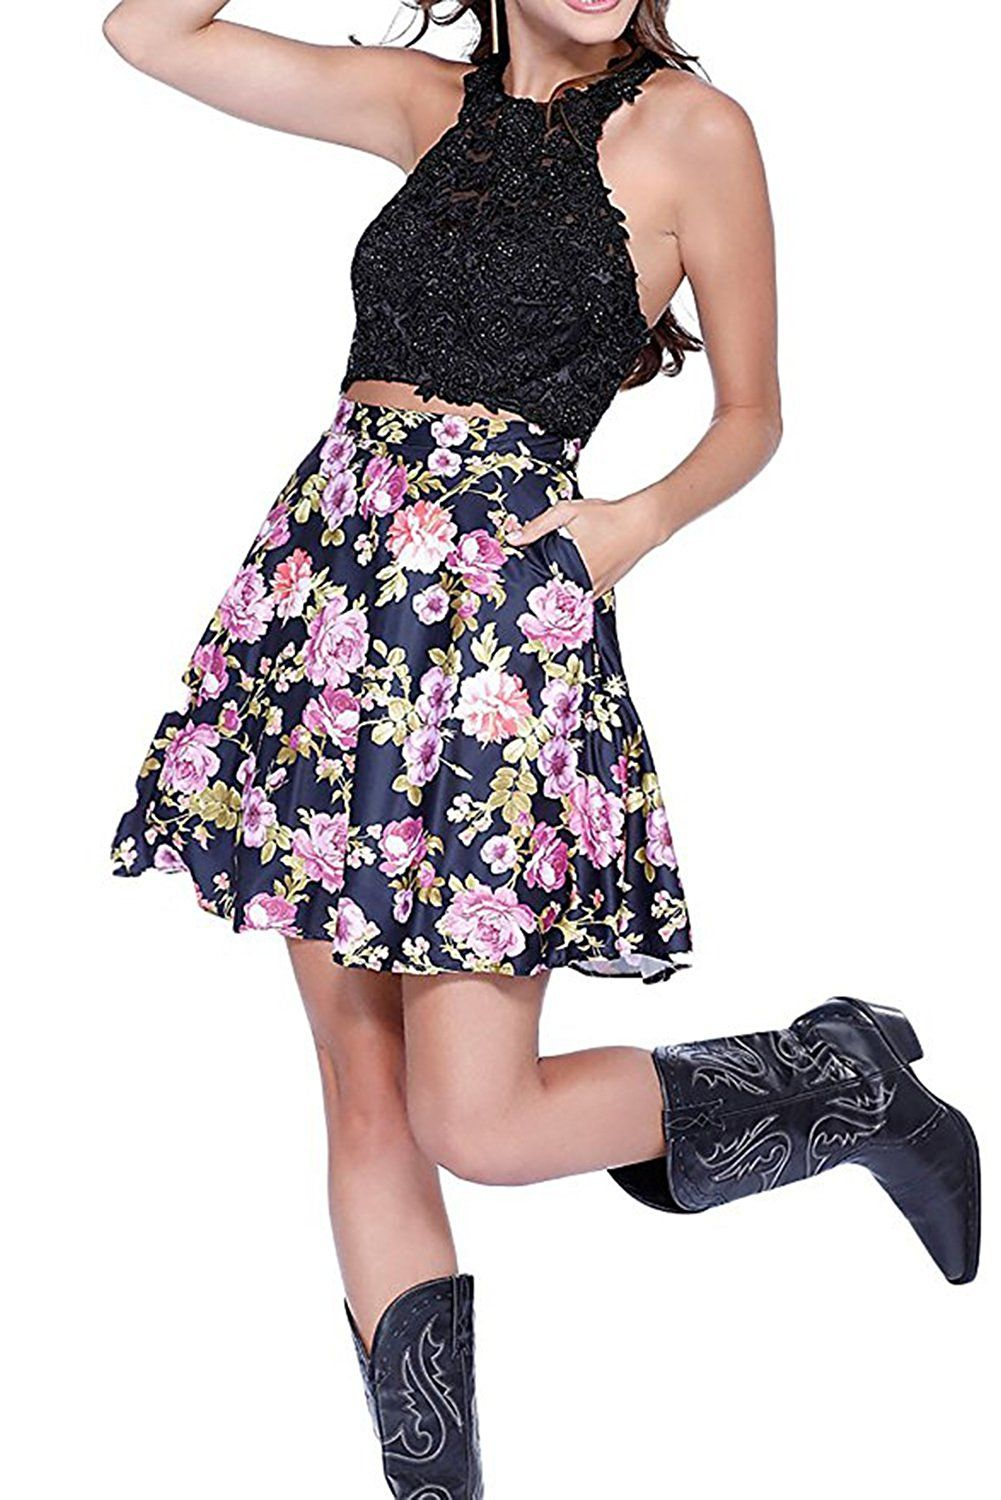 Homdor floral printed piece prom dress short beaded formal gown